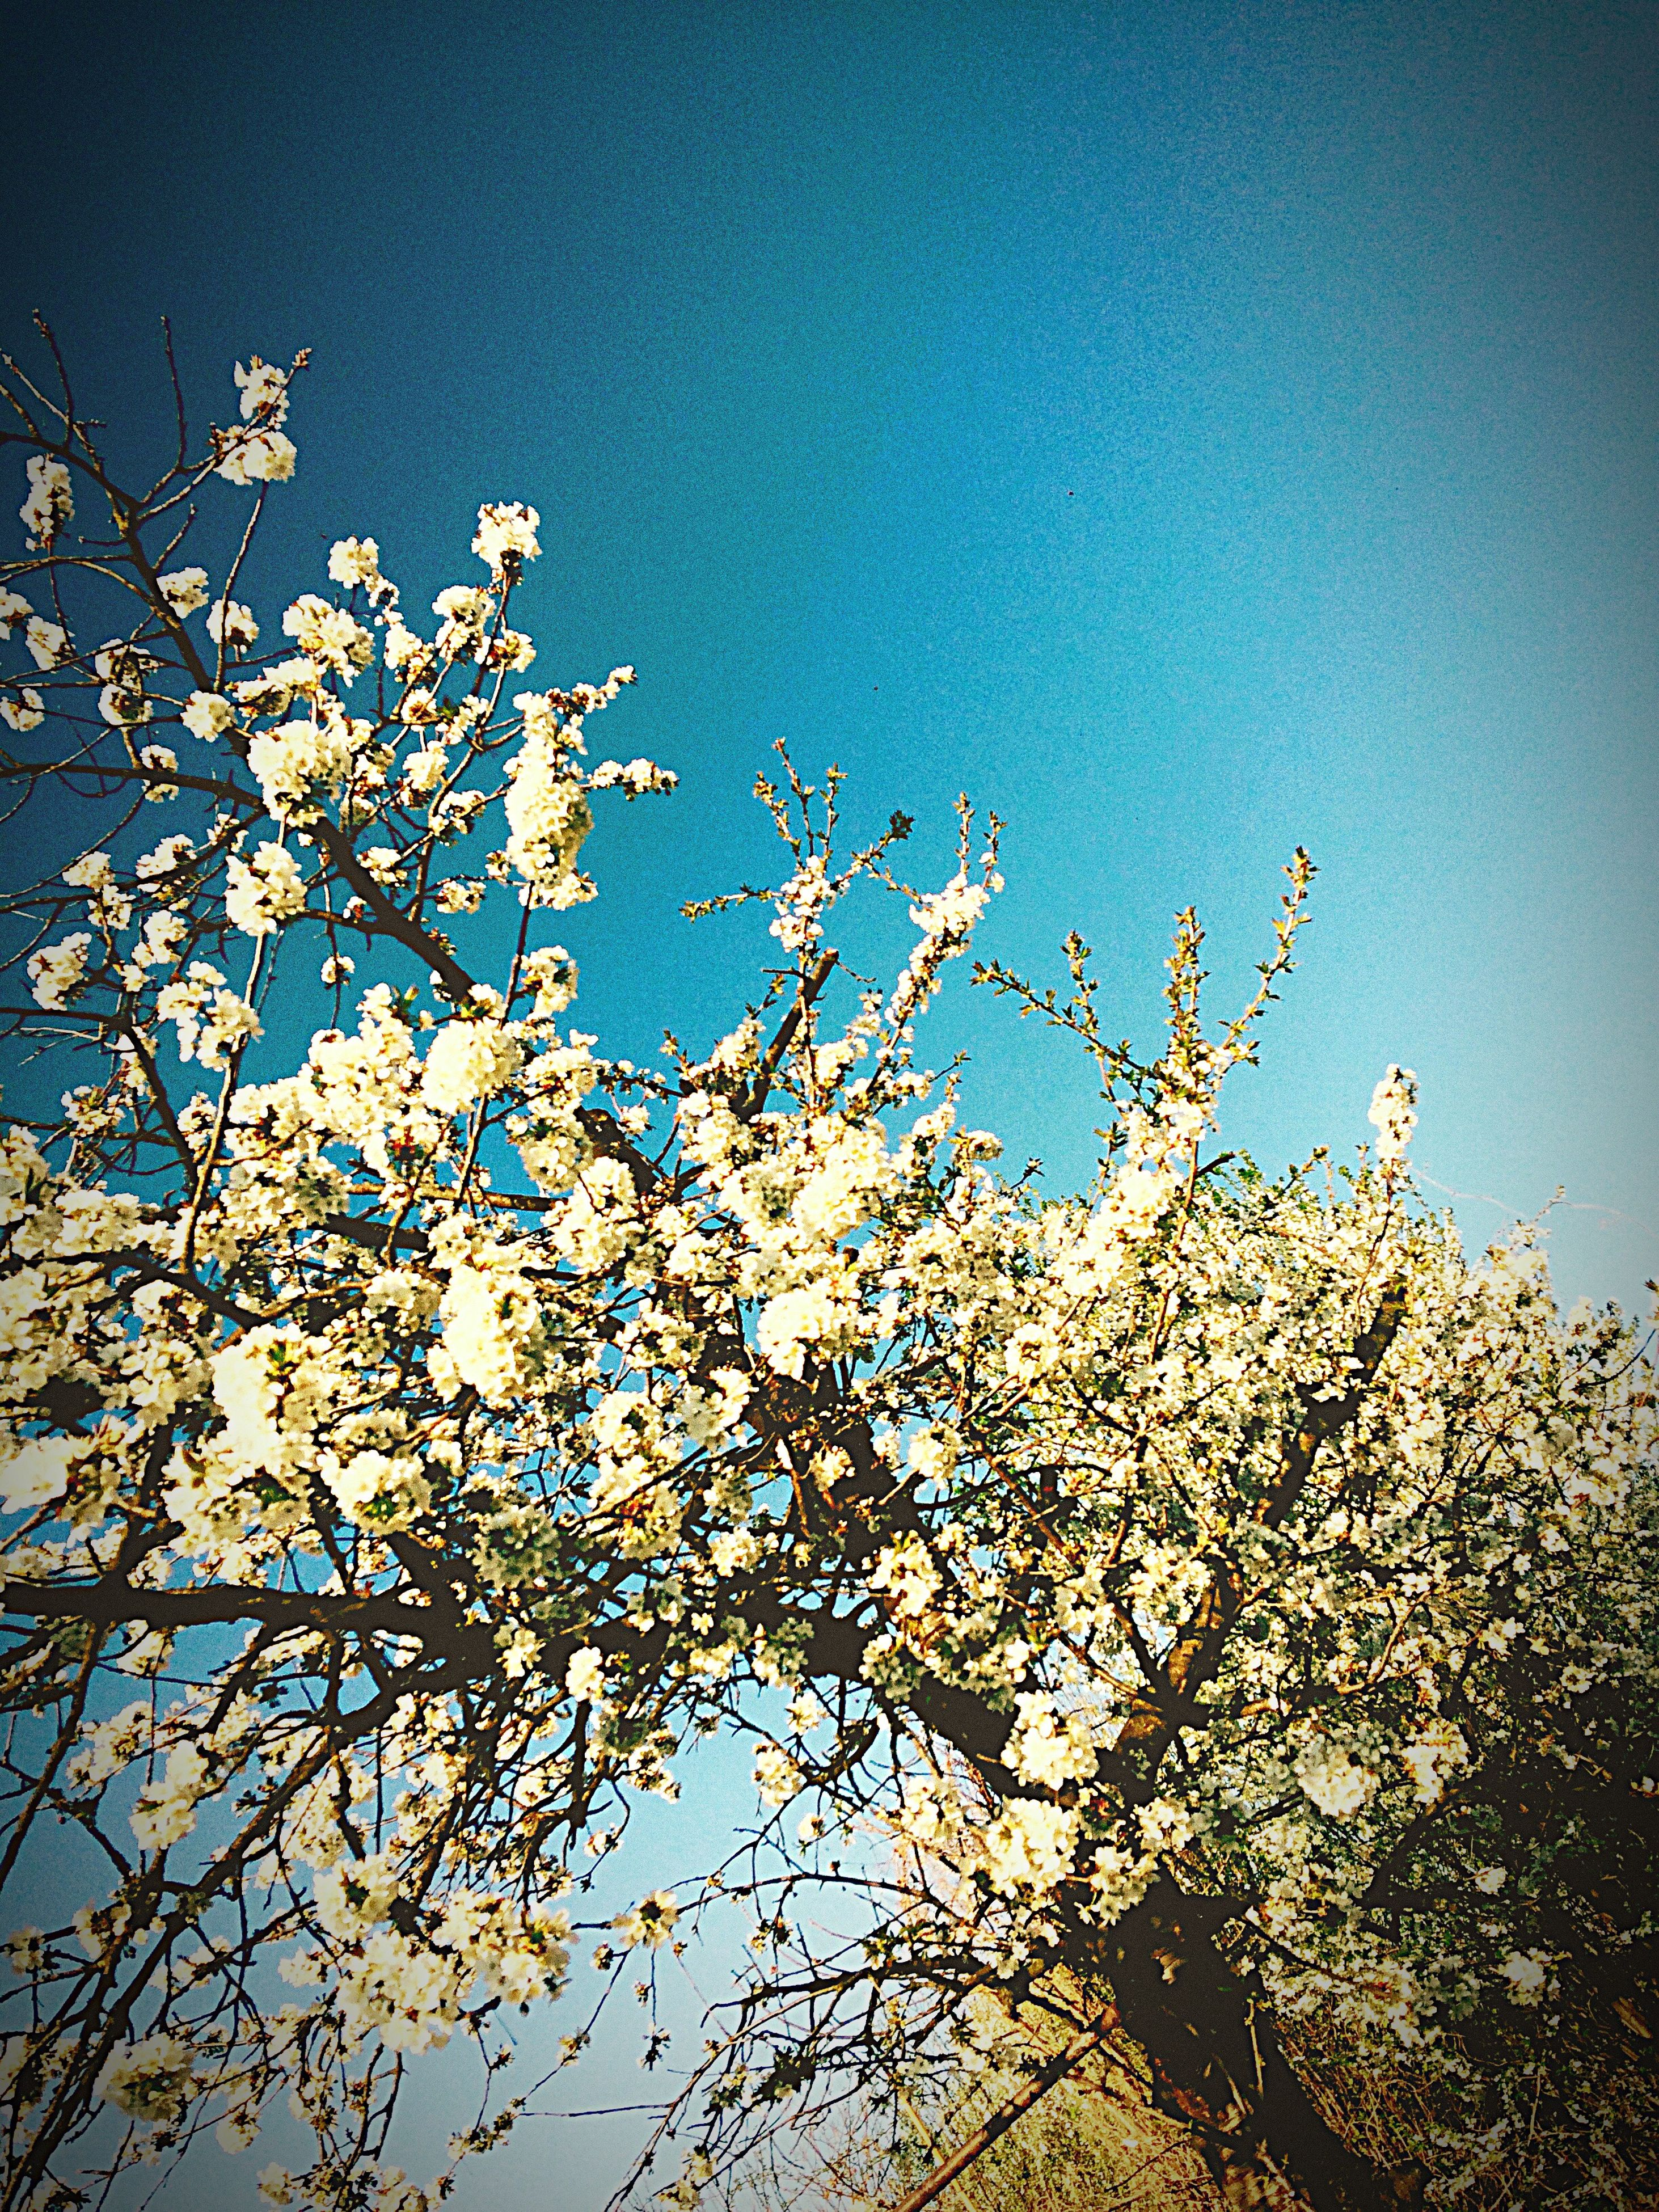 nature, low angle view, beauty in nature, no people, sky, growth, sunlight, clear sky, outdoors, close-up, tree, day, fragility